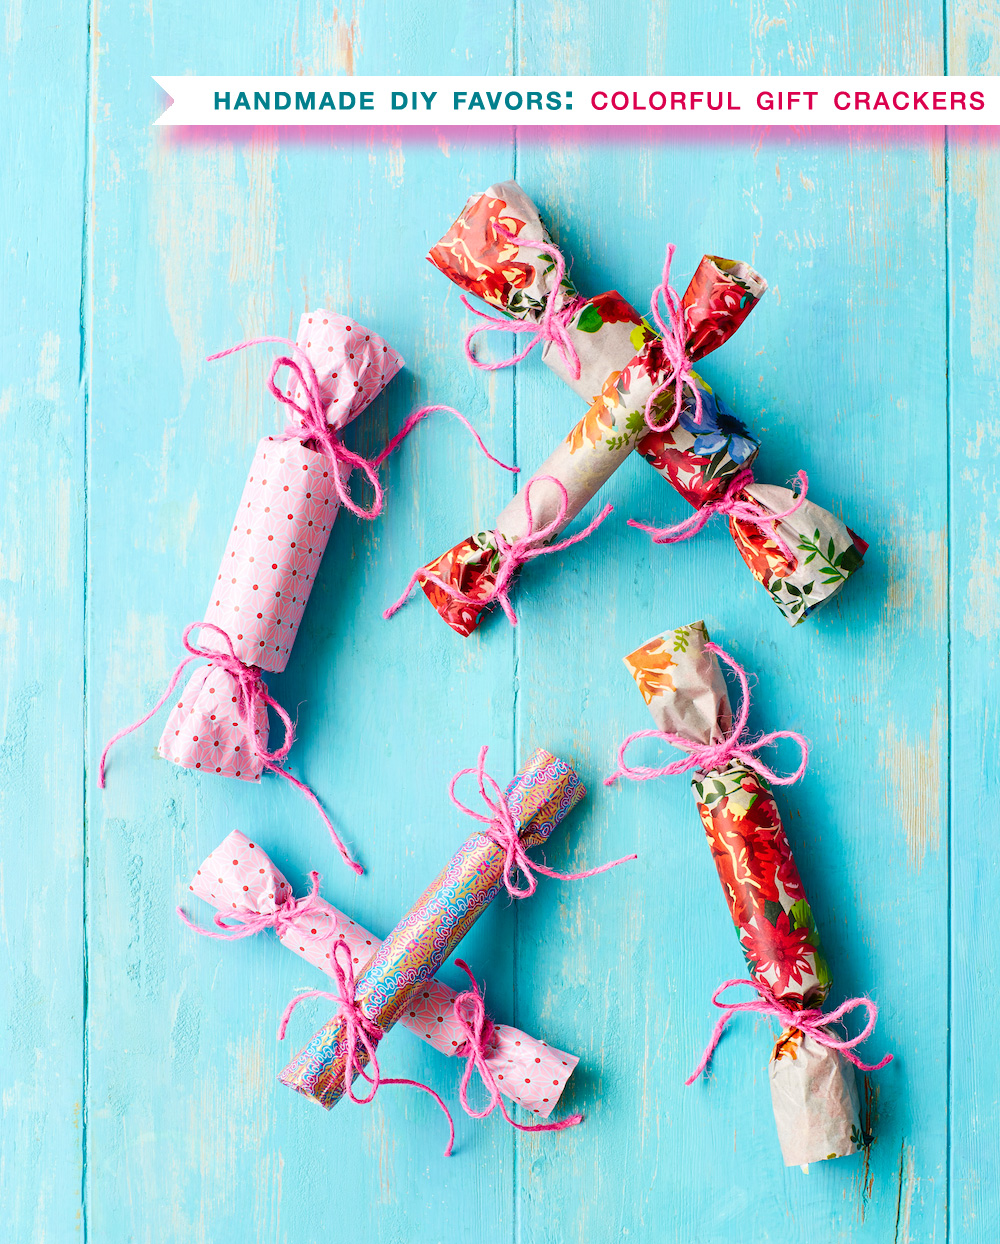 Colorful Gift Crackers : DIY Handmade Party Favors / find the how to at www.BrendasWeddingBlog.com